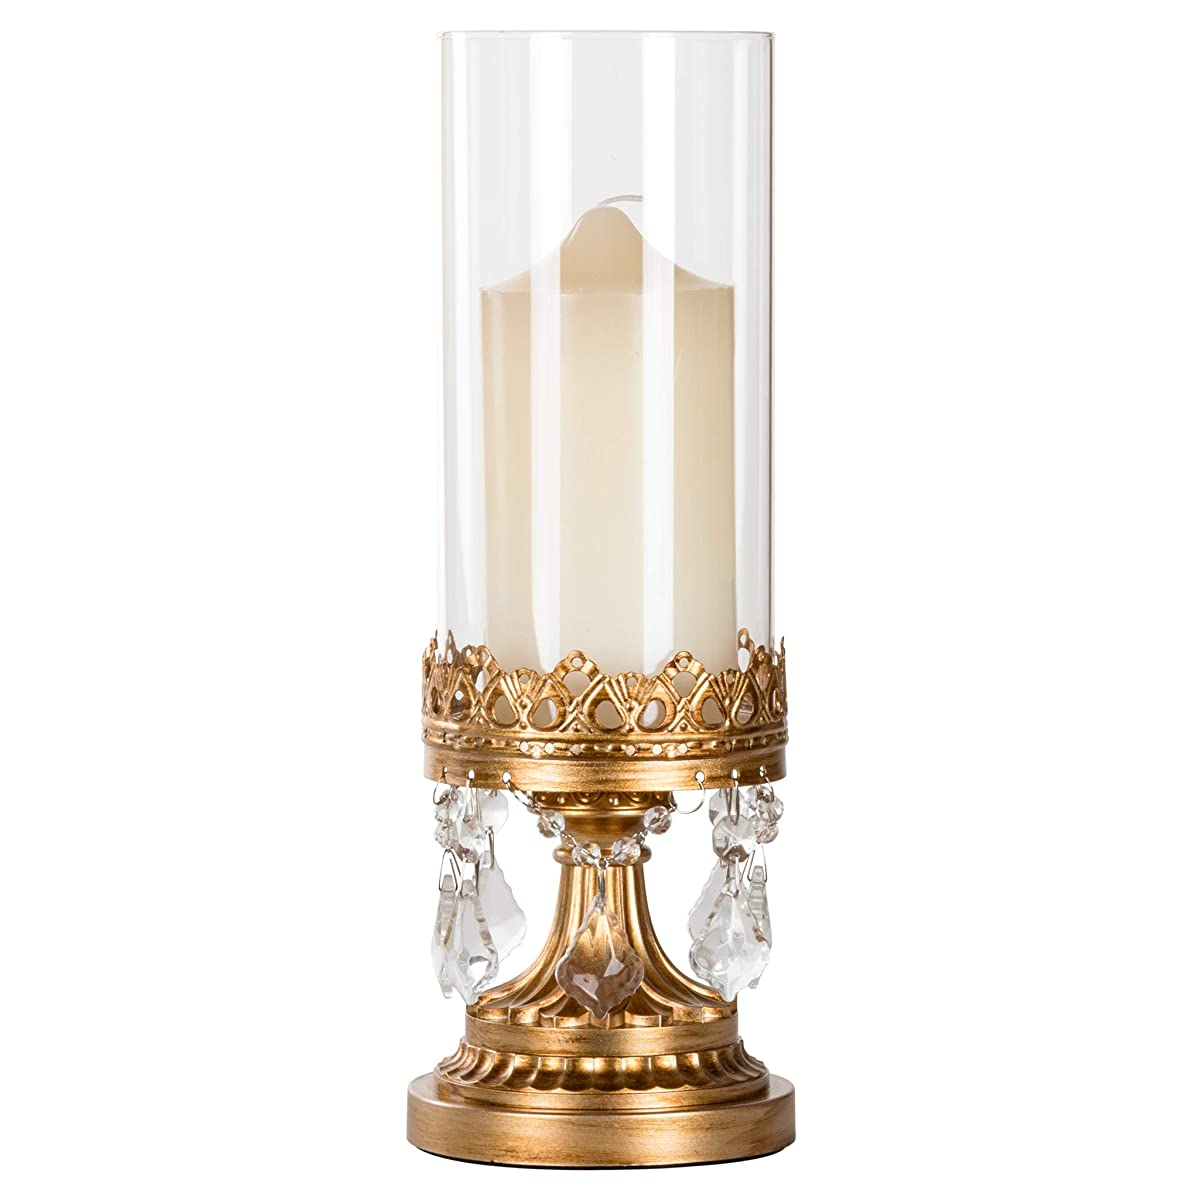 Amalfi Décor Antique Gold Metal Candle Holder with Glass Hurricane Vase, Crystal Draped Pillar Stand Accent Display